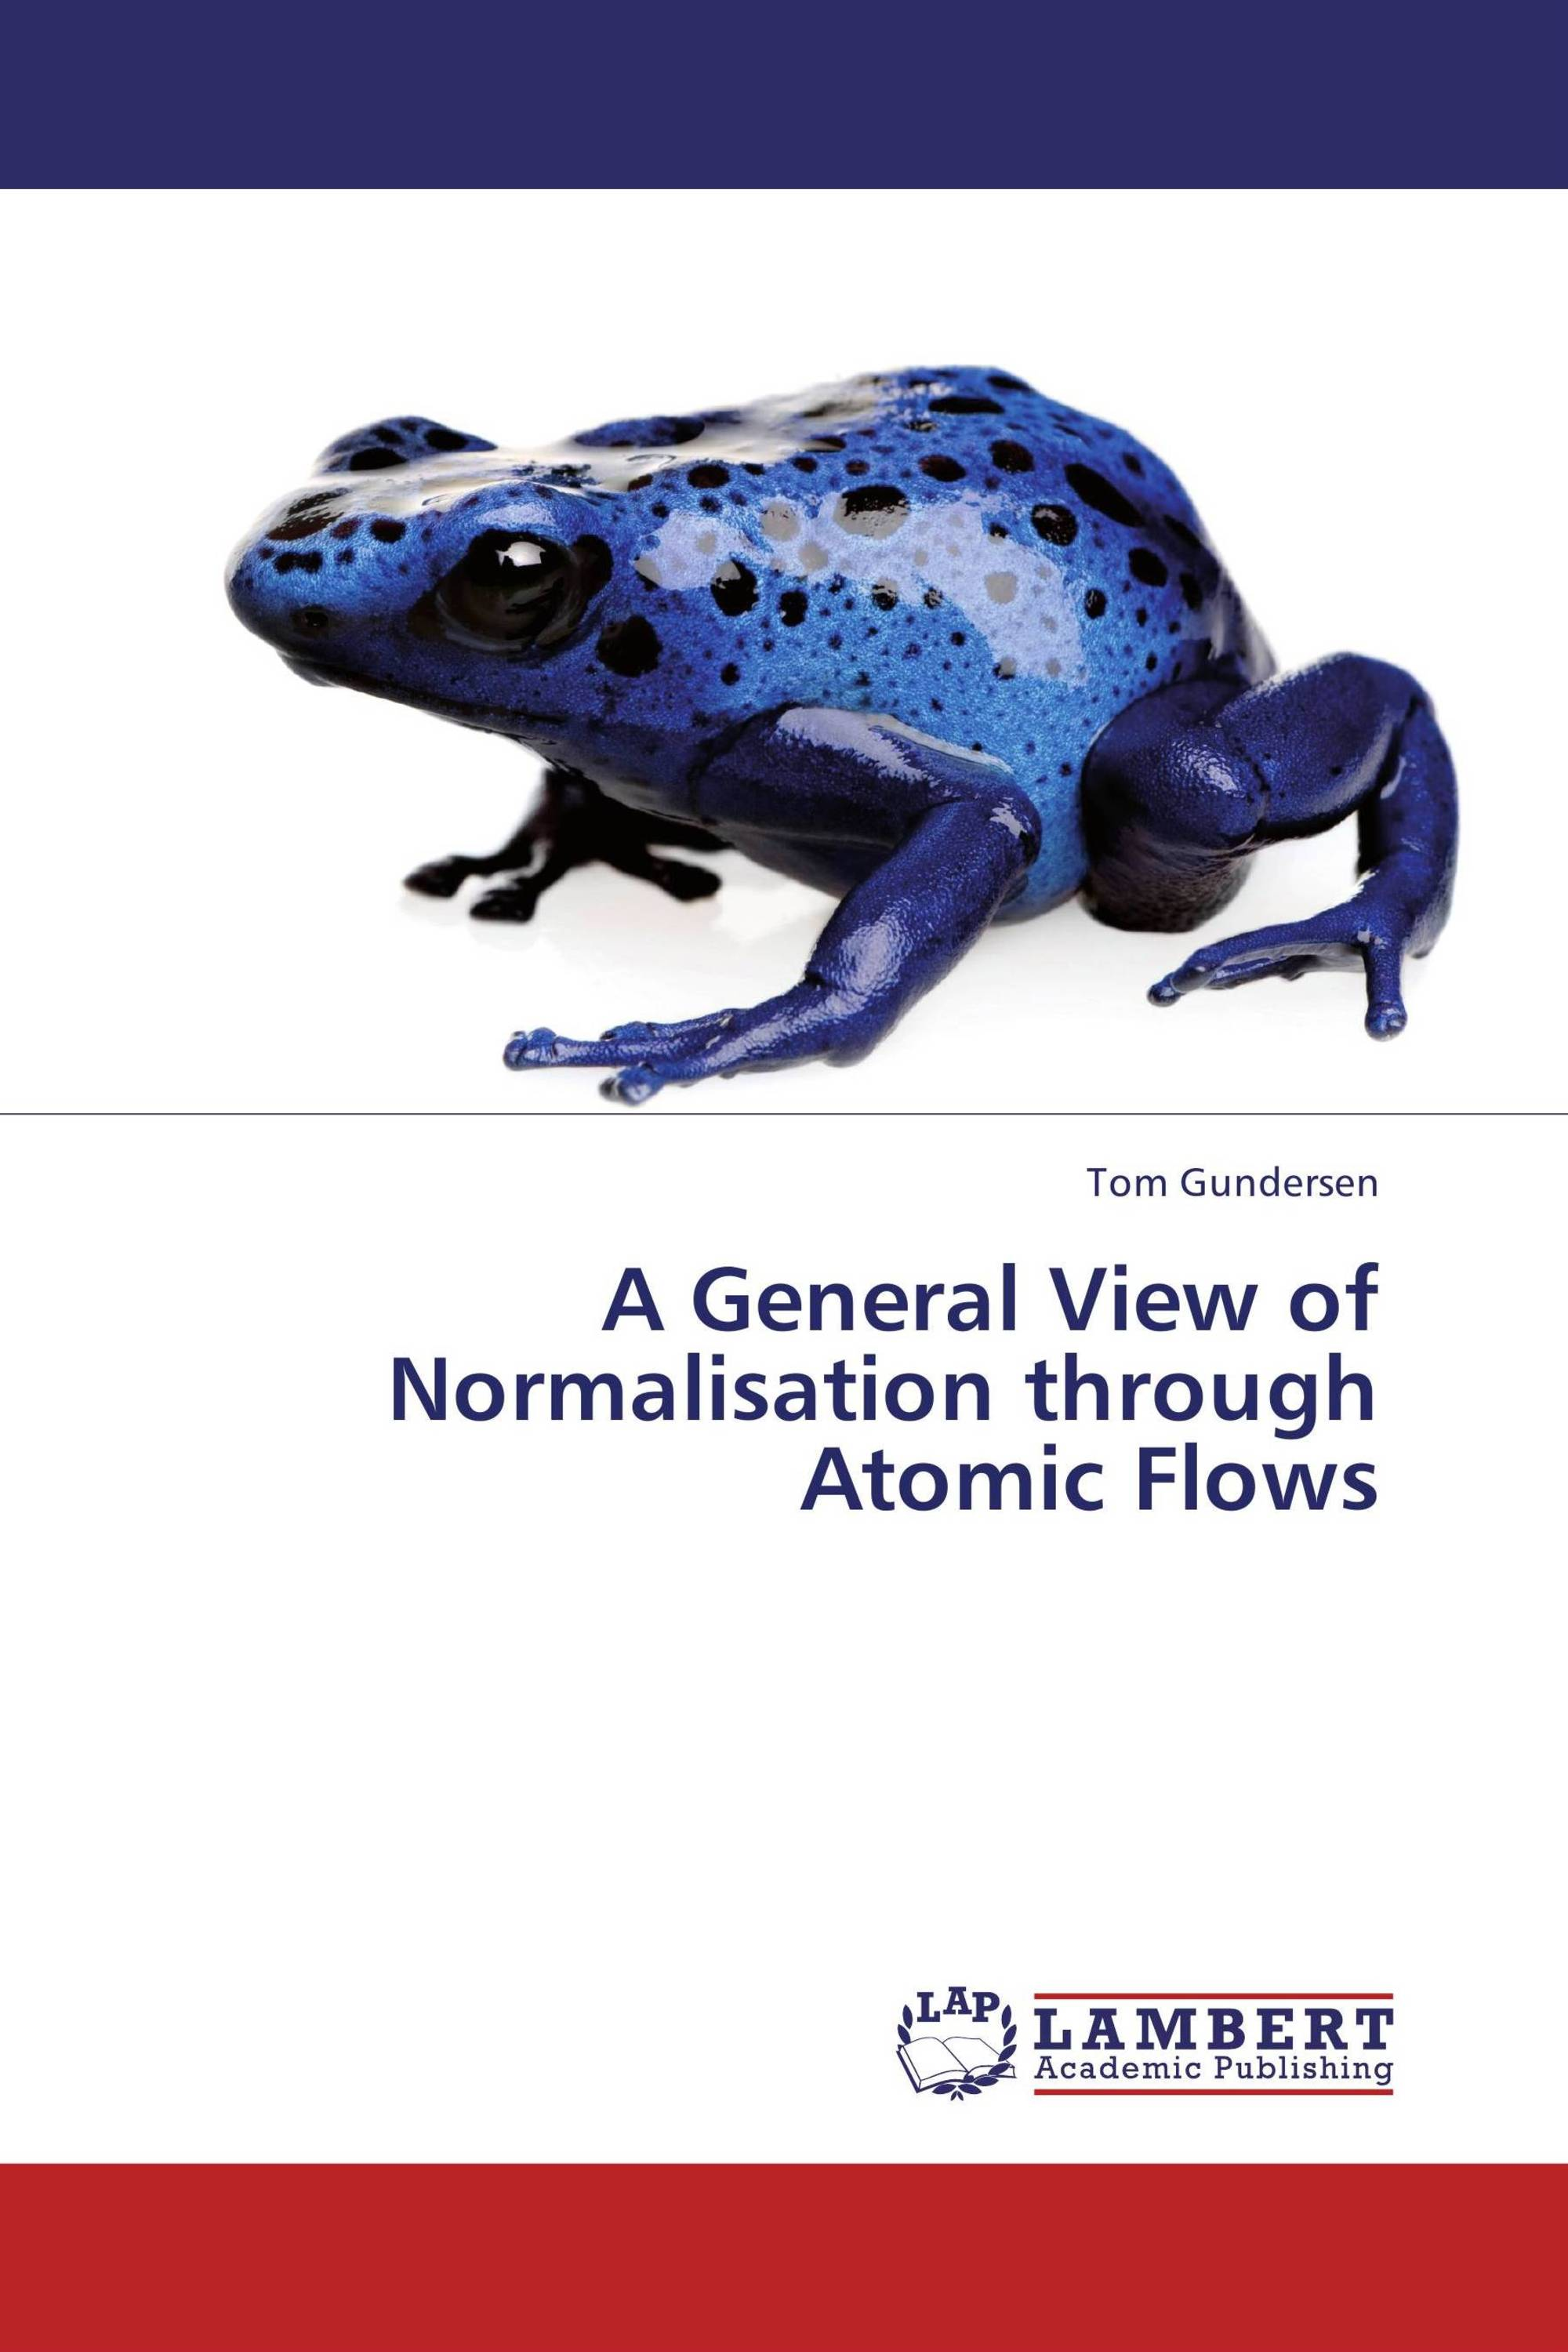 A General View of Normalisation through Atomic Flows